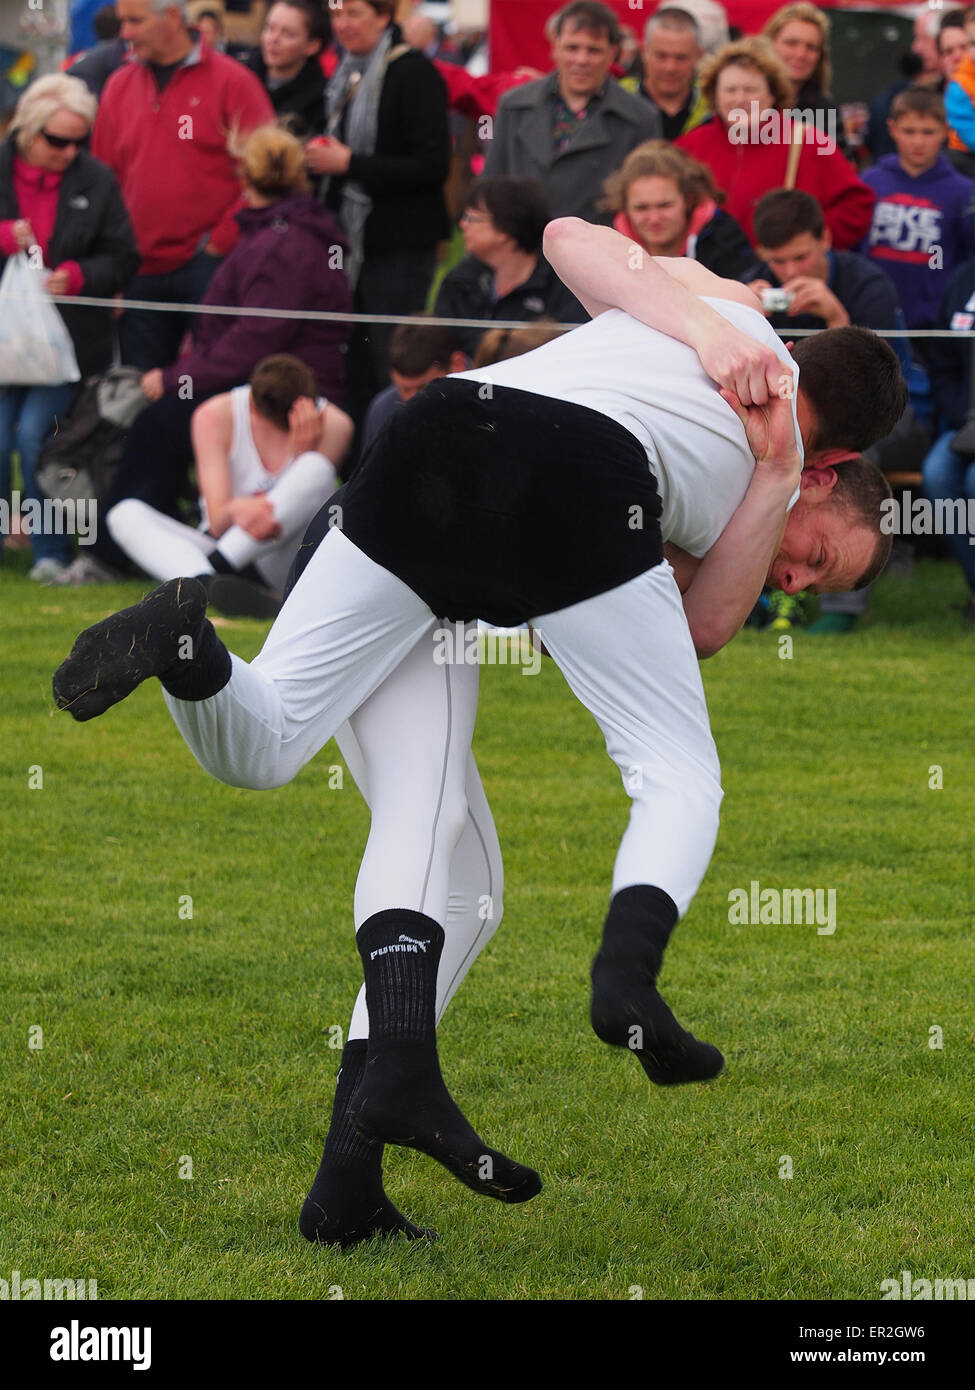 Bywell, UK. 25th May, 2015. Cumberland and Westmorland Wrestling competition at the Northumberland County Show, - Stock Image